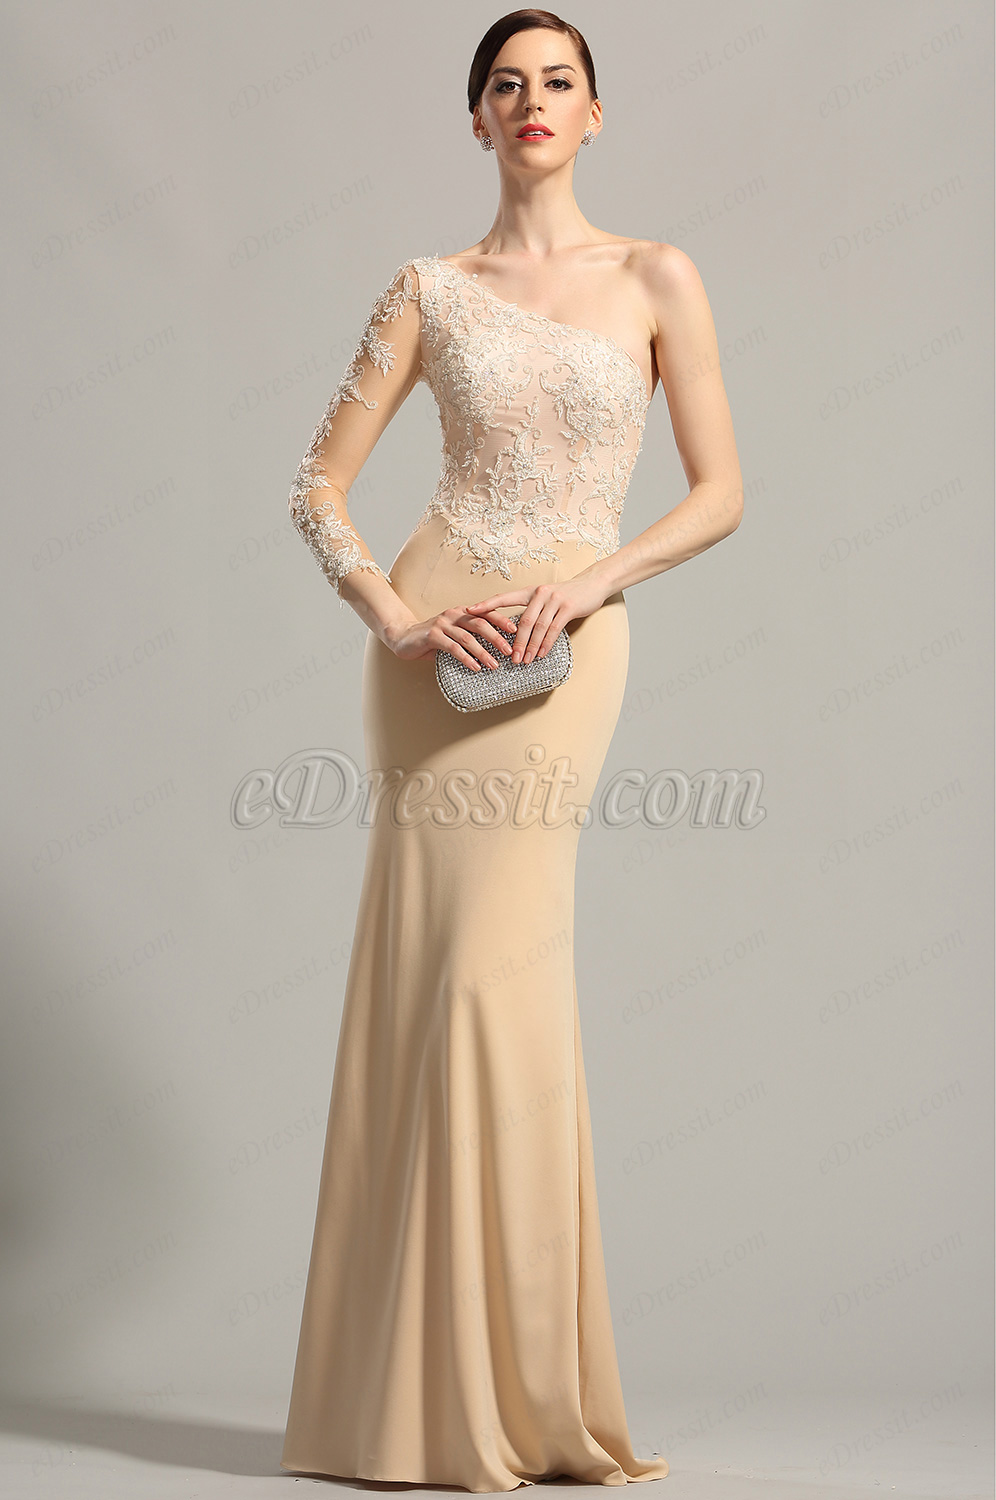 It Does Not Matter That This Dress Includes White Lace Bodice The Beige Skirt Will Distract You From Bride